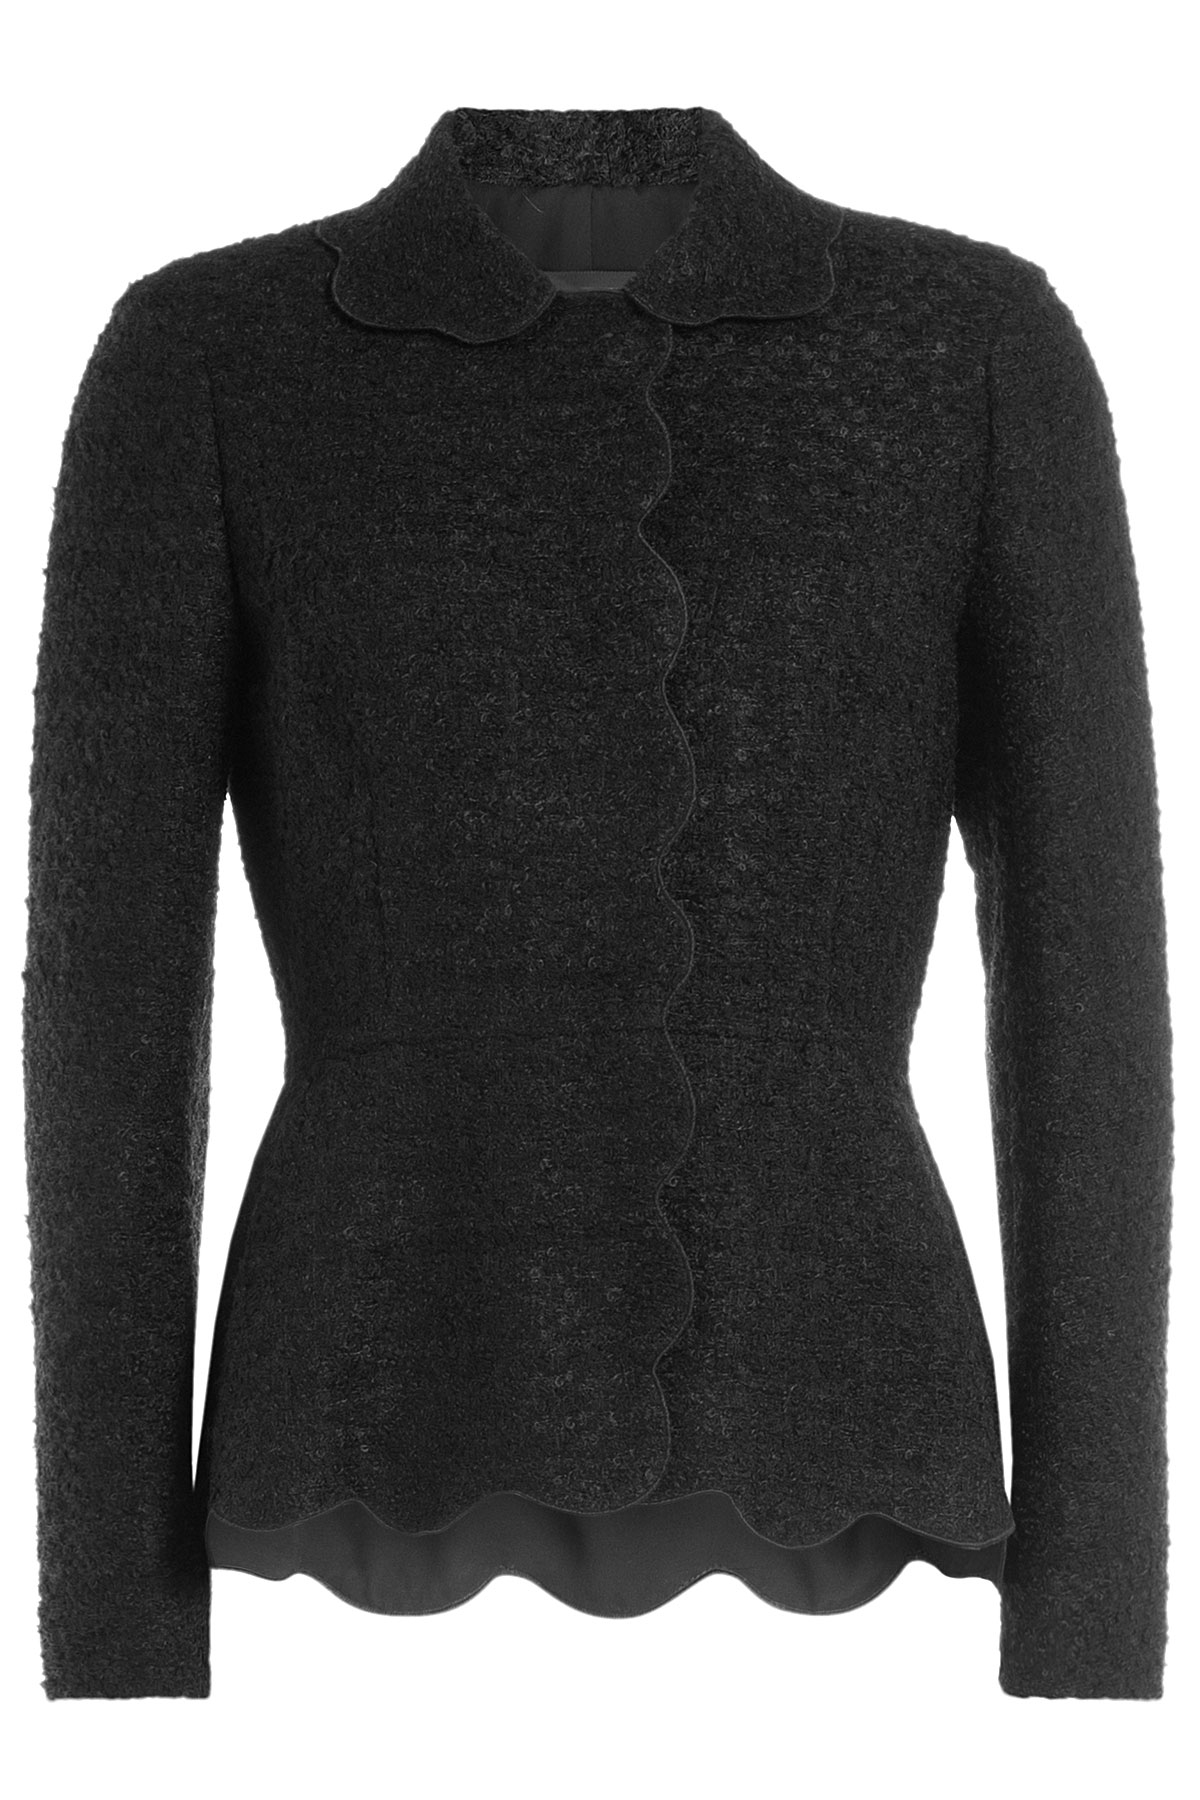 Browse 74 Bouclé Jackets at Stylight − 43 best selling brands Sale: up to −55% Bouclé Jackets in great variety of styles & colors Shop now» Vintage Adolfo Pink & Black Ribbon Trim Boucle Jacket s. USD $ Delivery: Delivery costs apply. Karl Lagerfeld. Chanel A/w A-symmetrical Front Side Zip Knitwear Cardigan Jacket